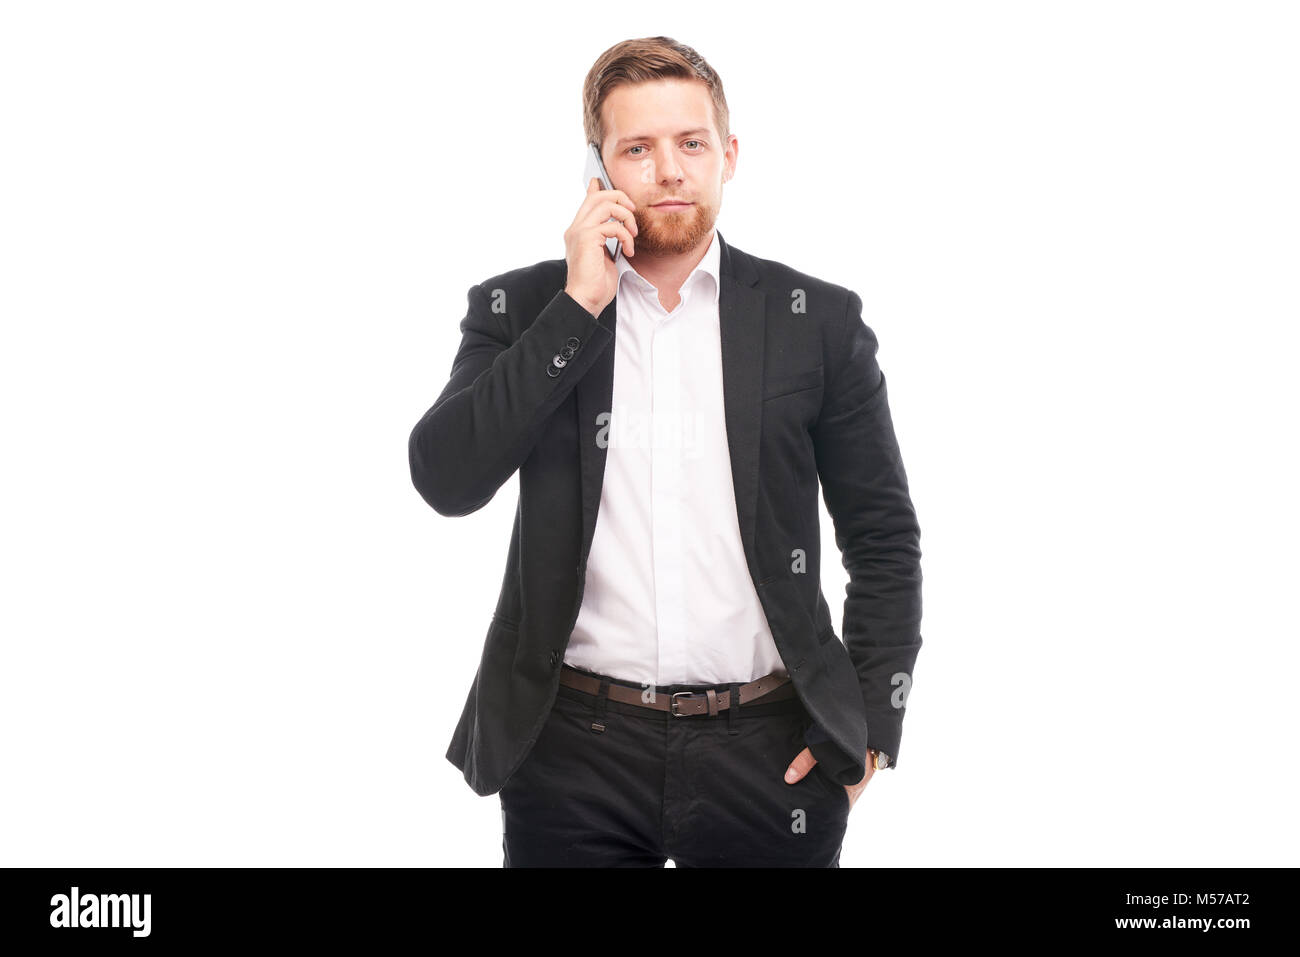 Businessman with mobile phone - Stock Image